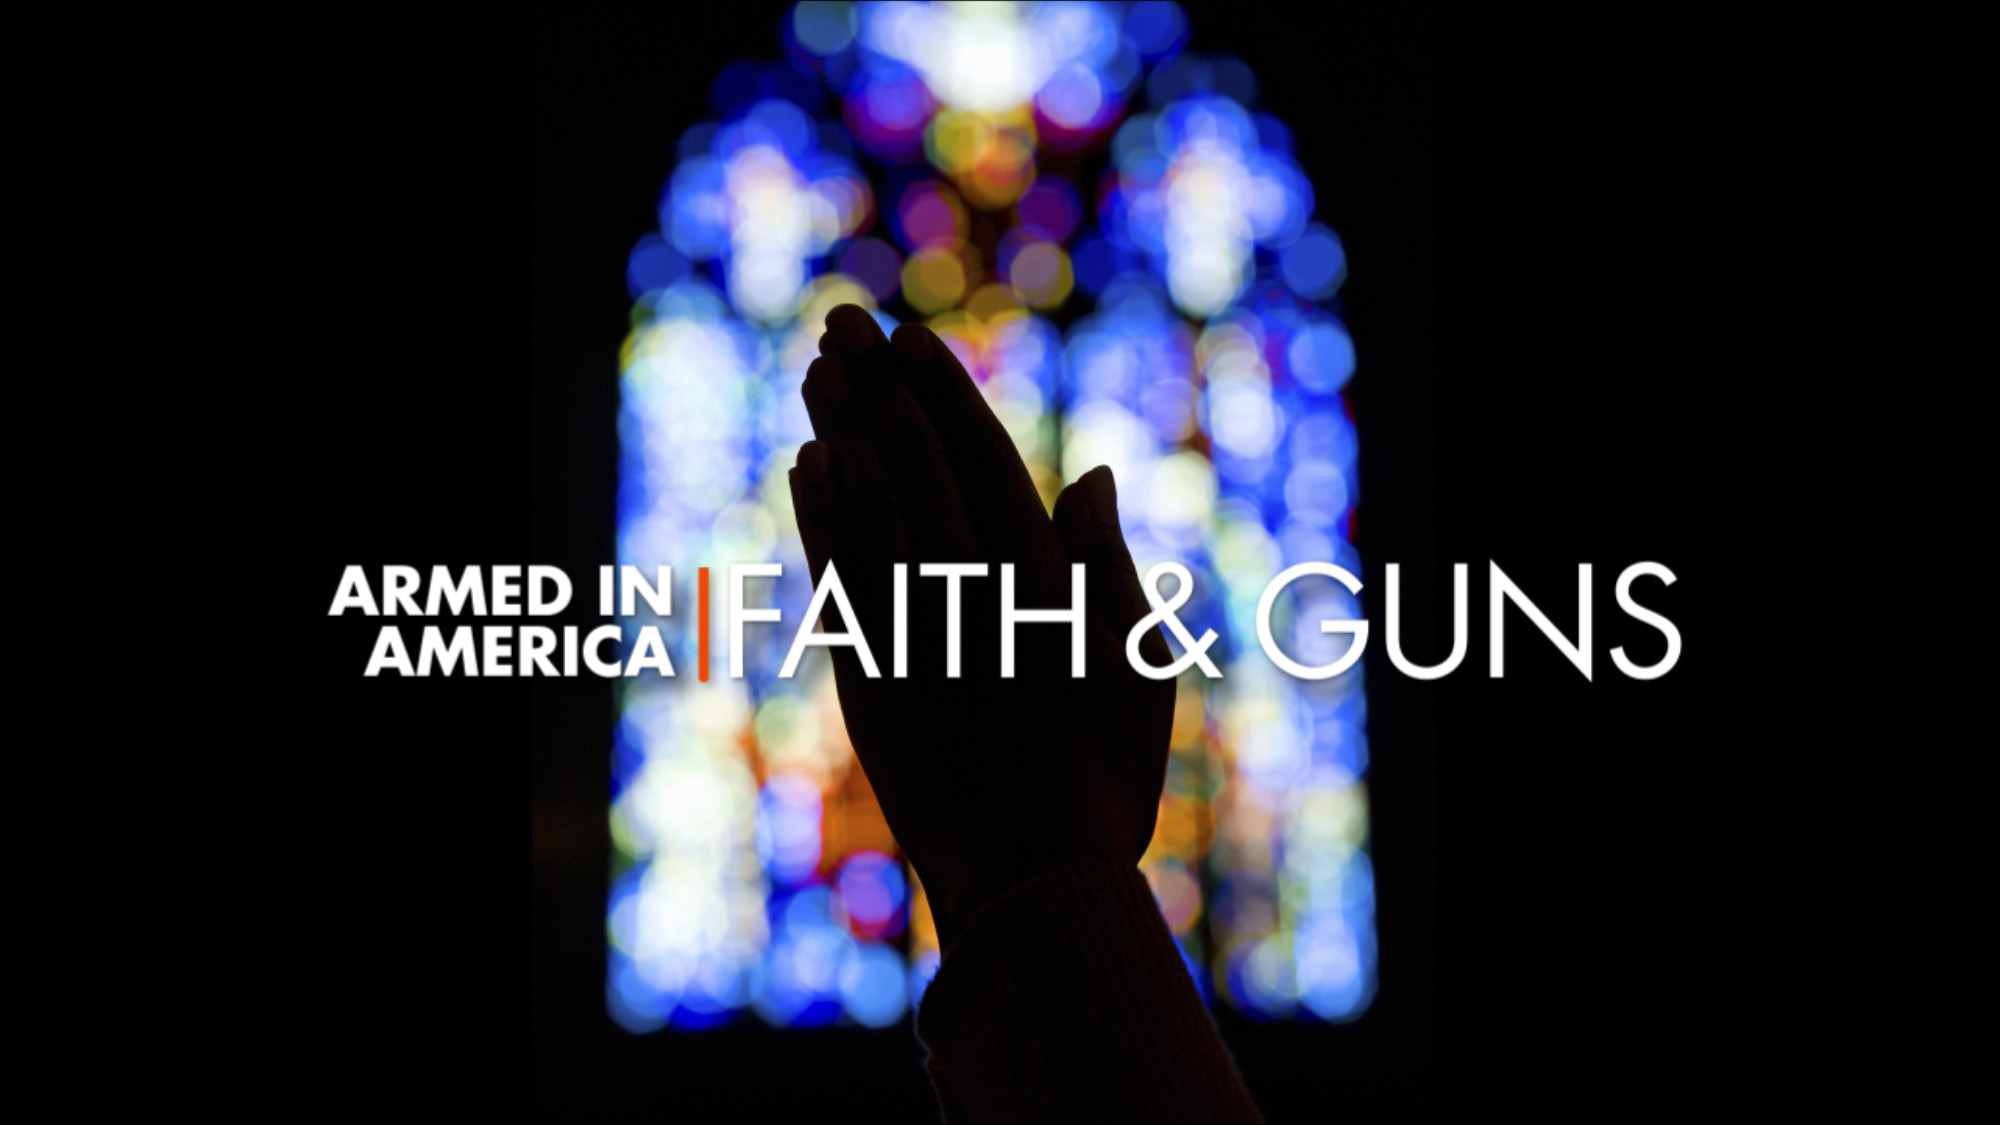 Armed in America: Faith & Guns title card